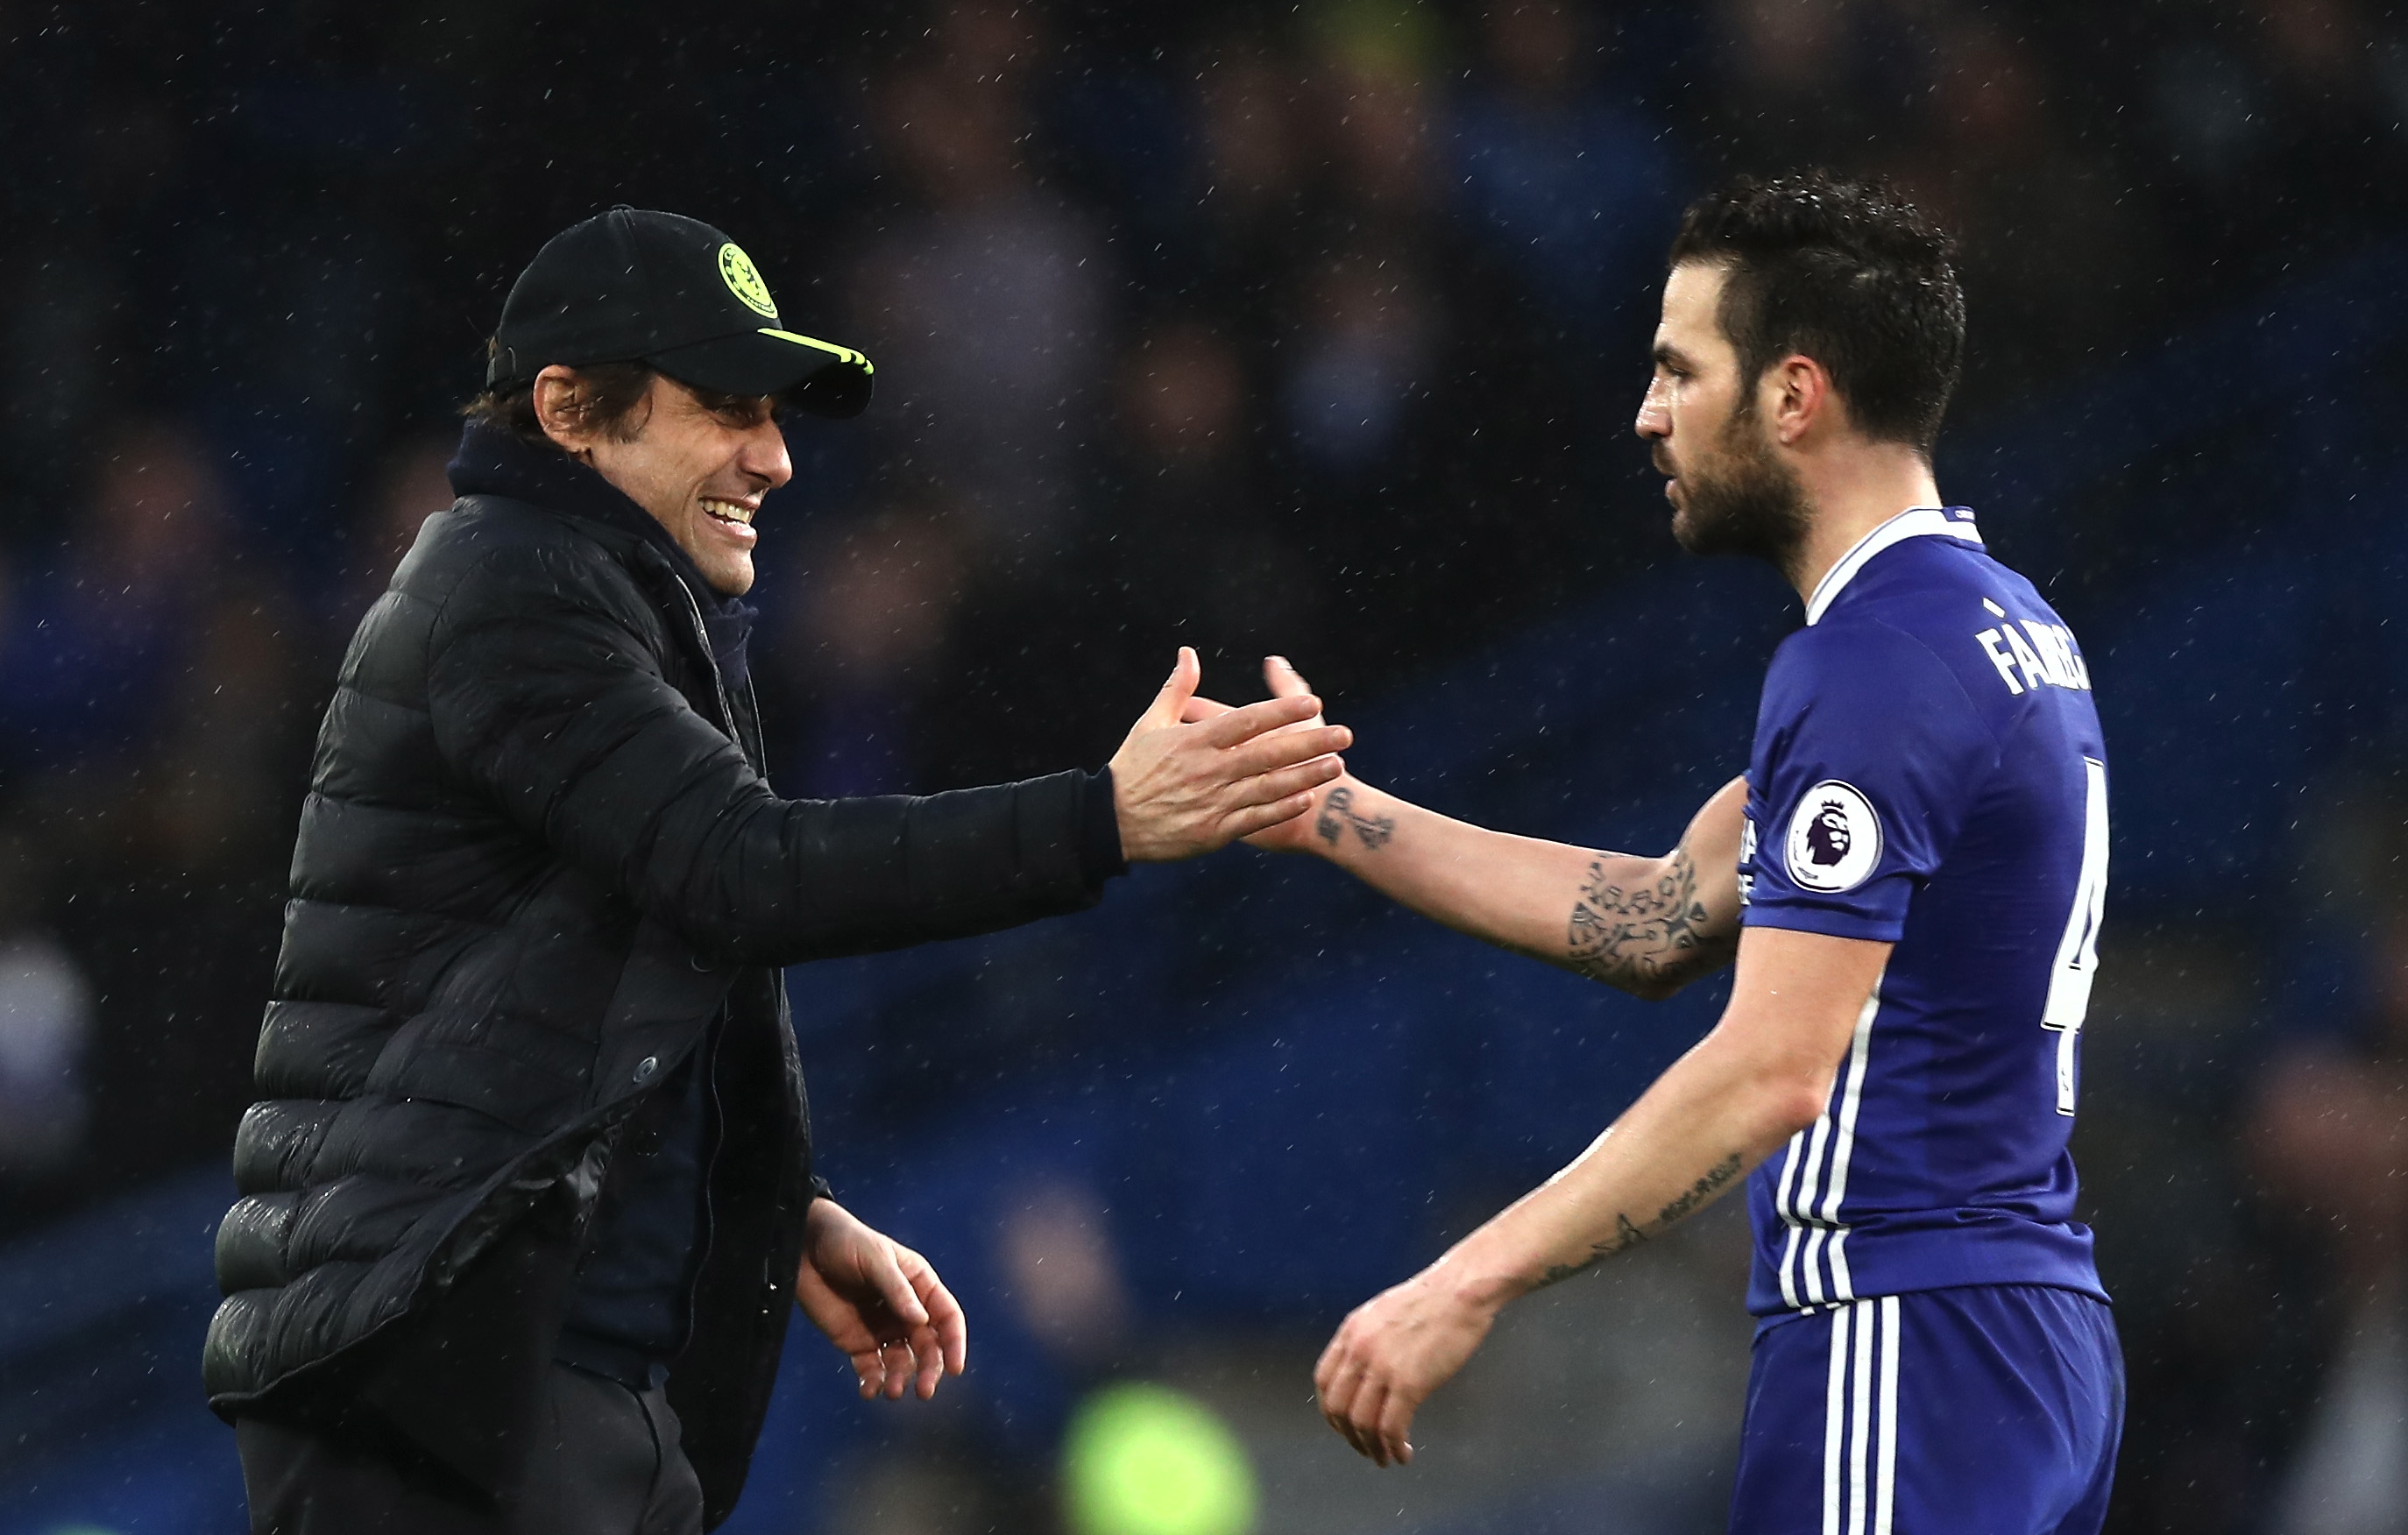 LONDON, ENGLAND - FEBRUARY 25:  Antonio Conte, Manager of Chelsea (L) and Cesc Fabregas of Chelsea (R) embrace after the Premier League match between Chelsea and Swansea City at Stamford Bridge on February 25, 2017 in London, England.  (Photo by Clive Rose/Getty Images)